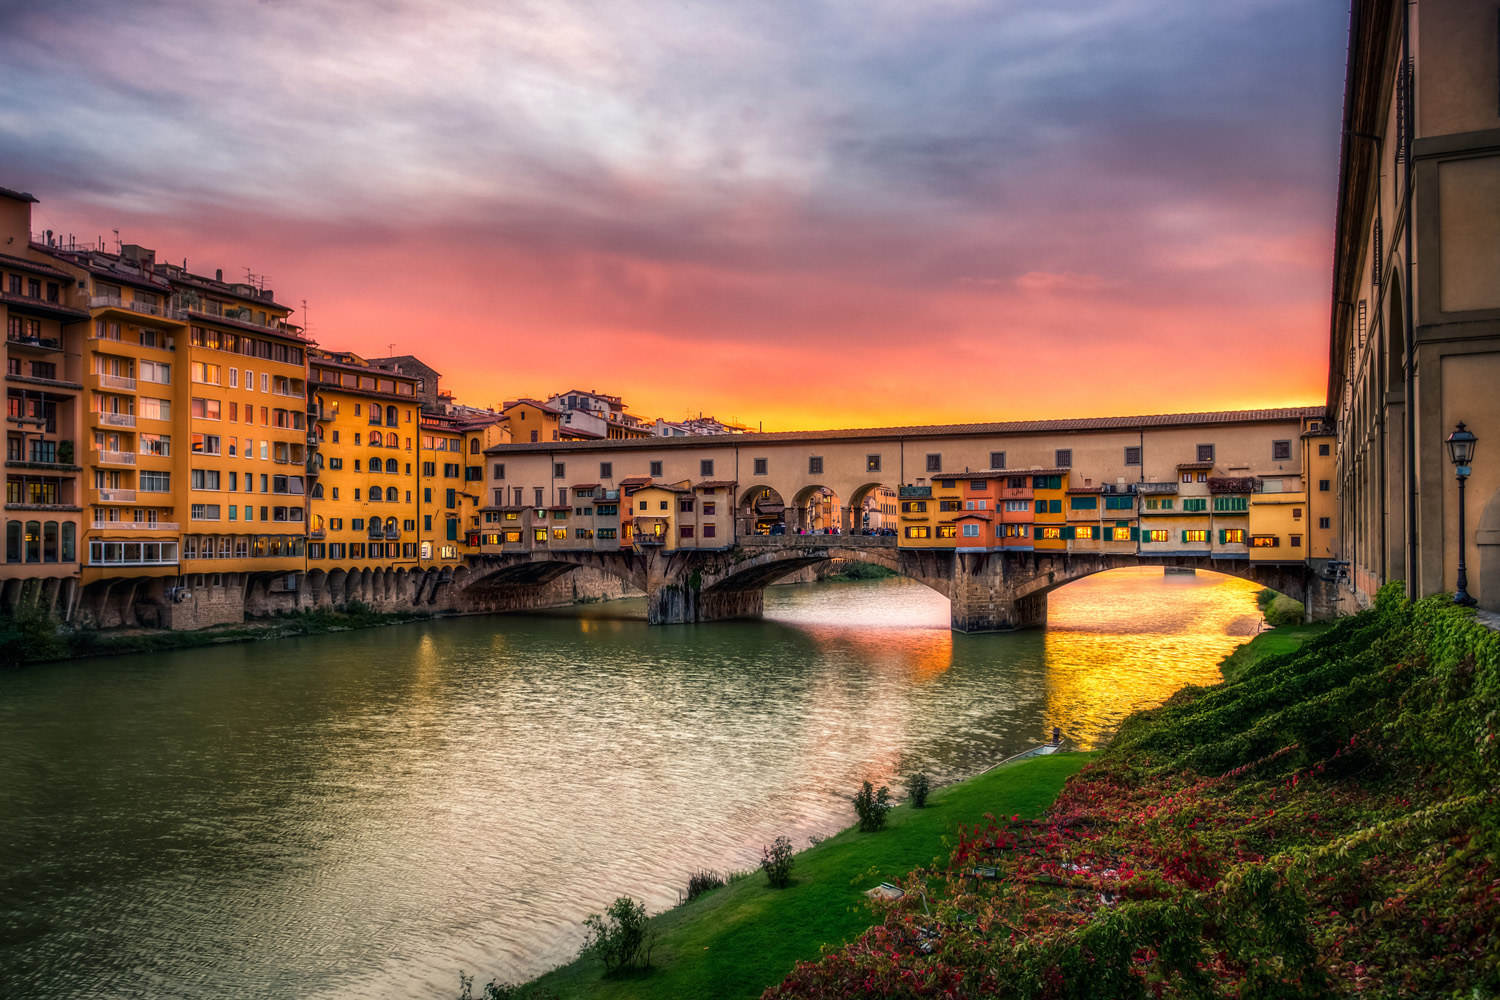 Sunset and the ponte vecchio. Some things stay the same... | Photo Justin Brown on flickr